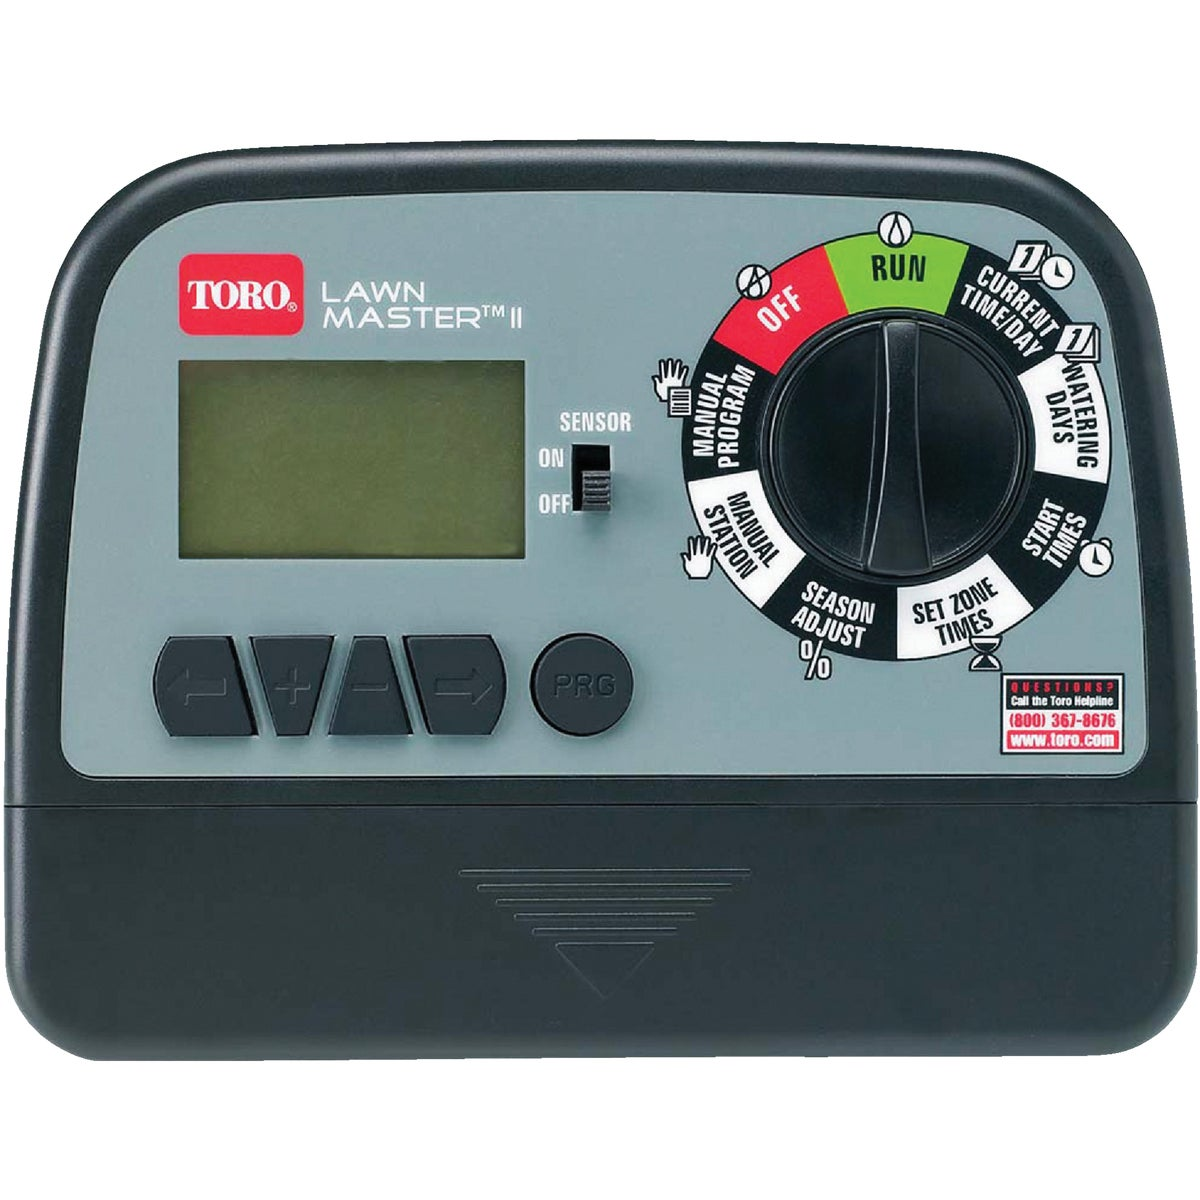 6 ZONE ELECTRONIC TIMER - 53806 by Toro/elect Appl Ordr